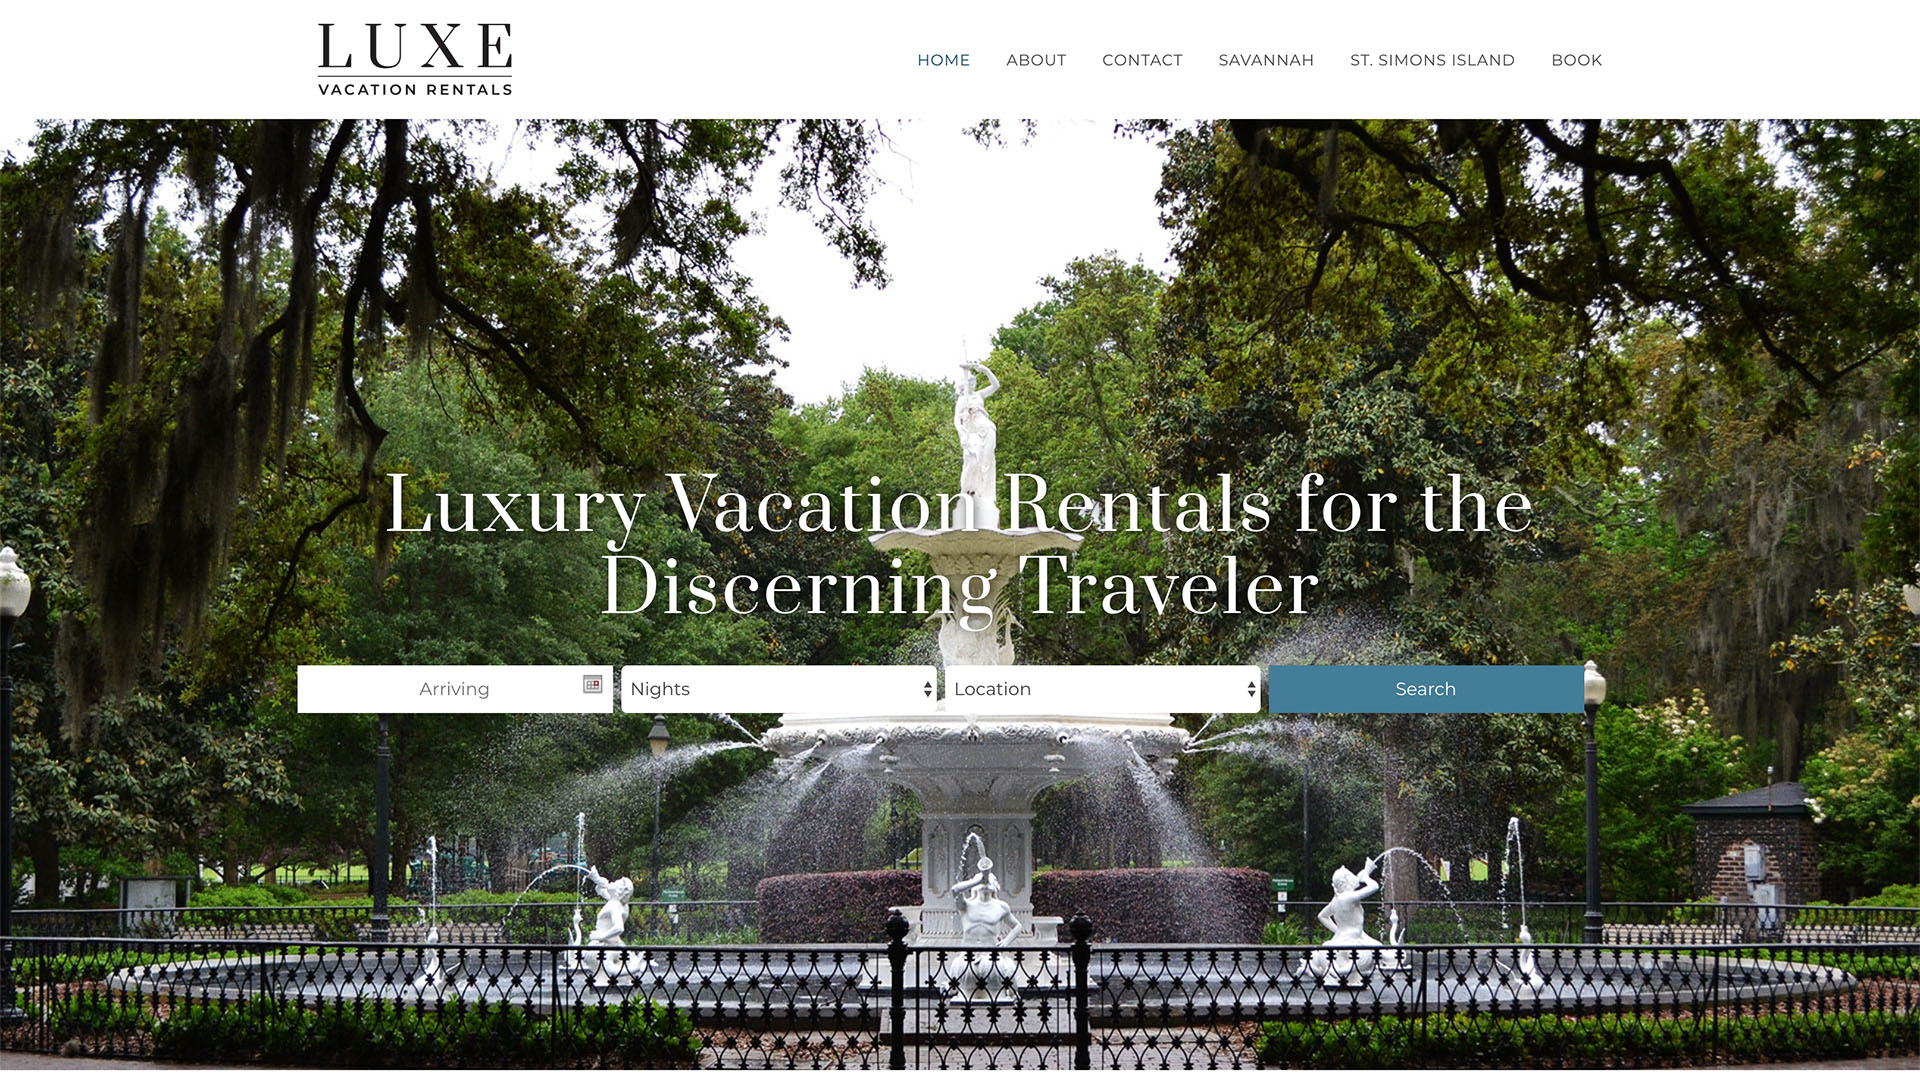 Luxe Vacation Rentals Web Design - Lauren Dingus Creative - Savannah, GA